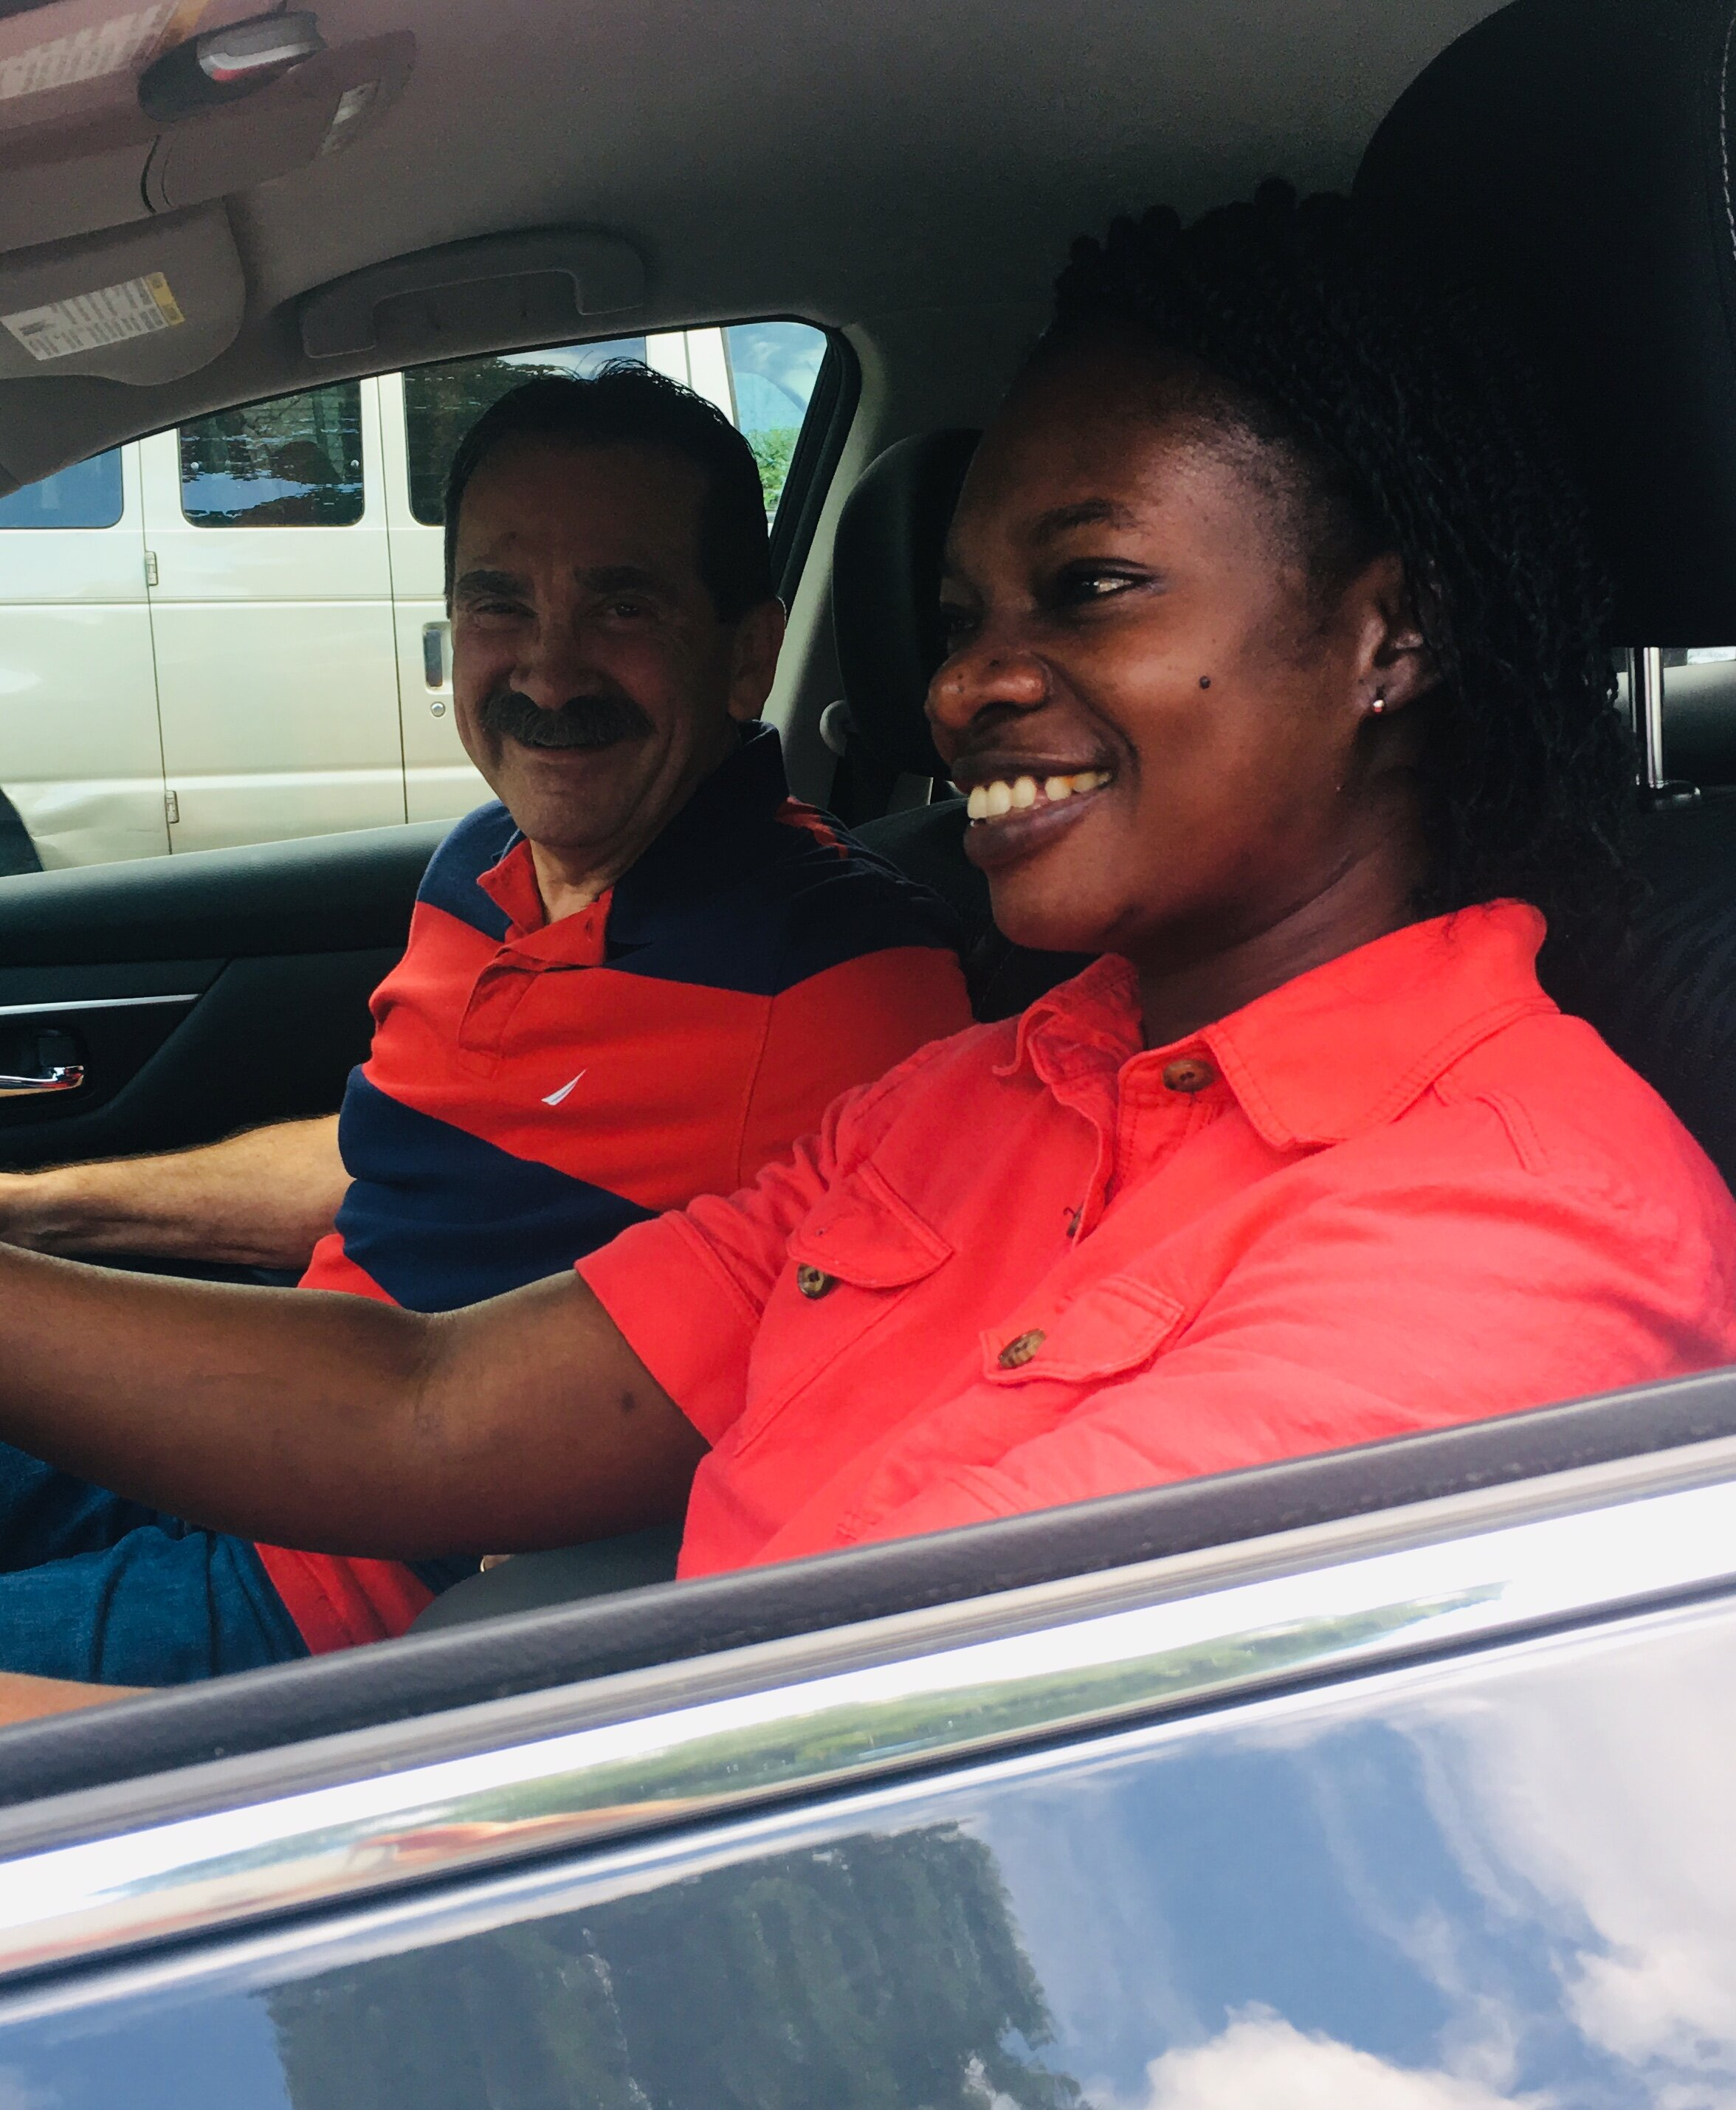 One of our selfless volunteers giving driving lessons to one of our moms, doing little things with great love!